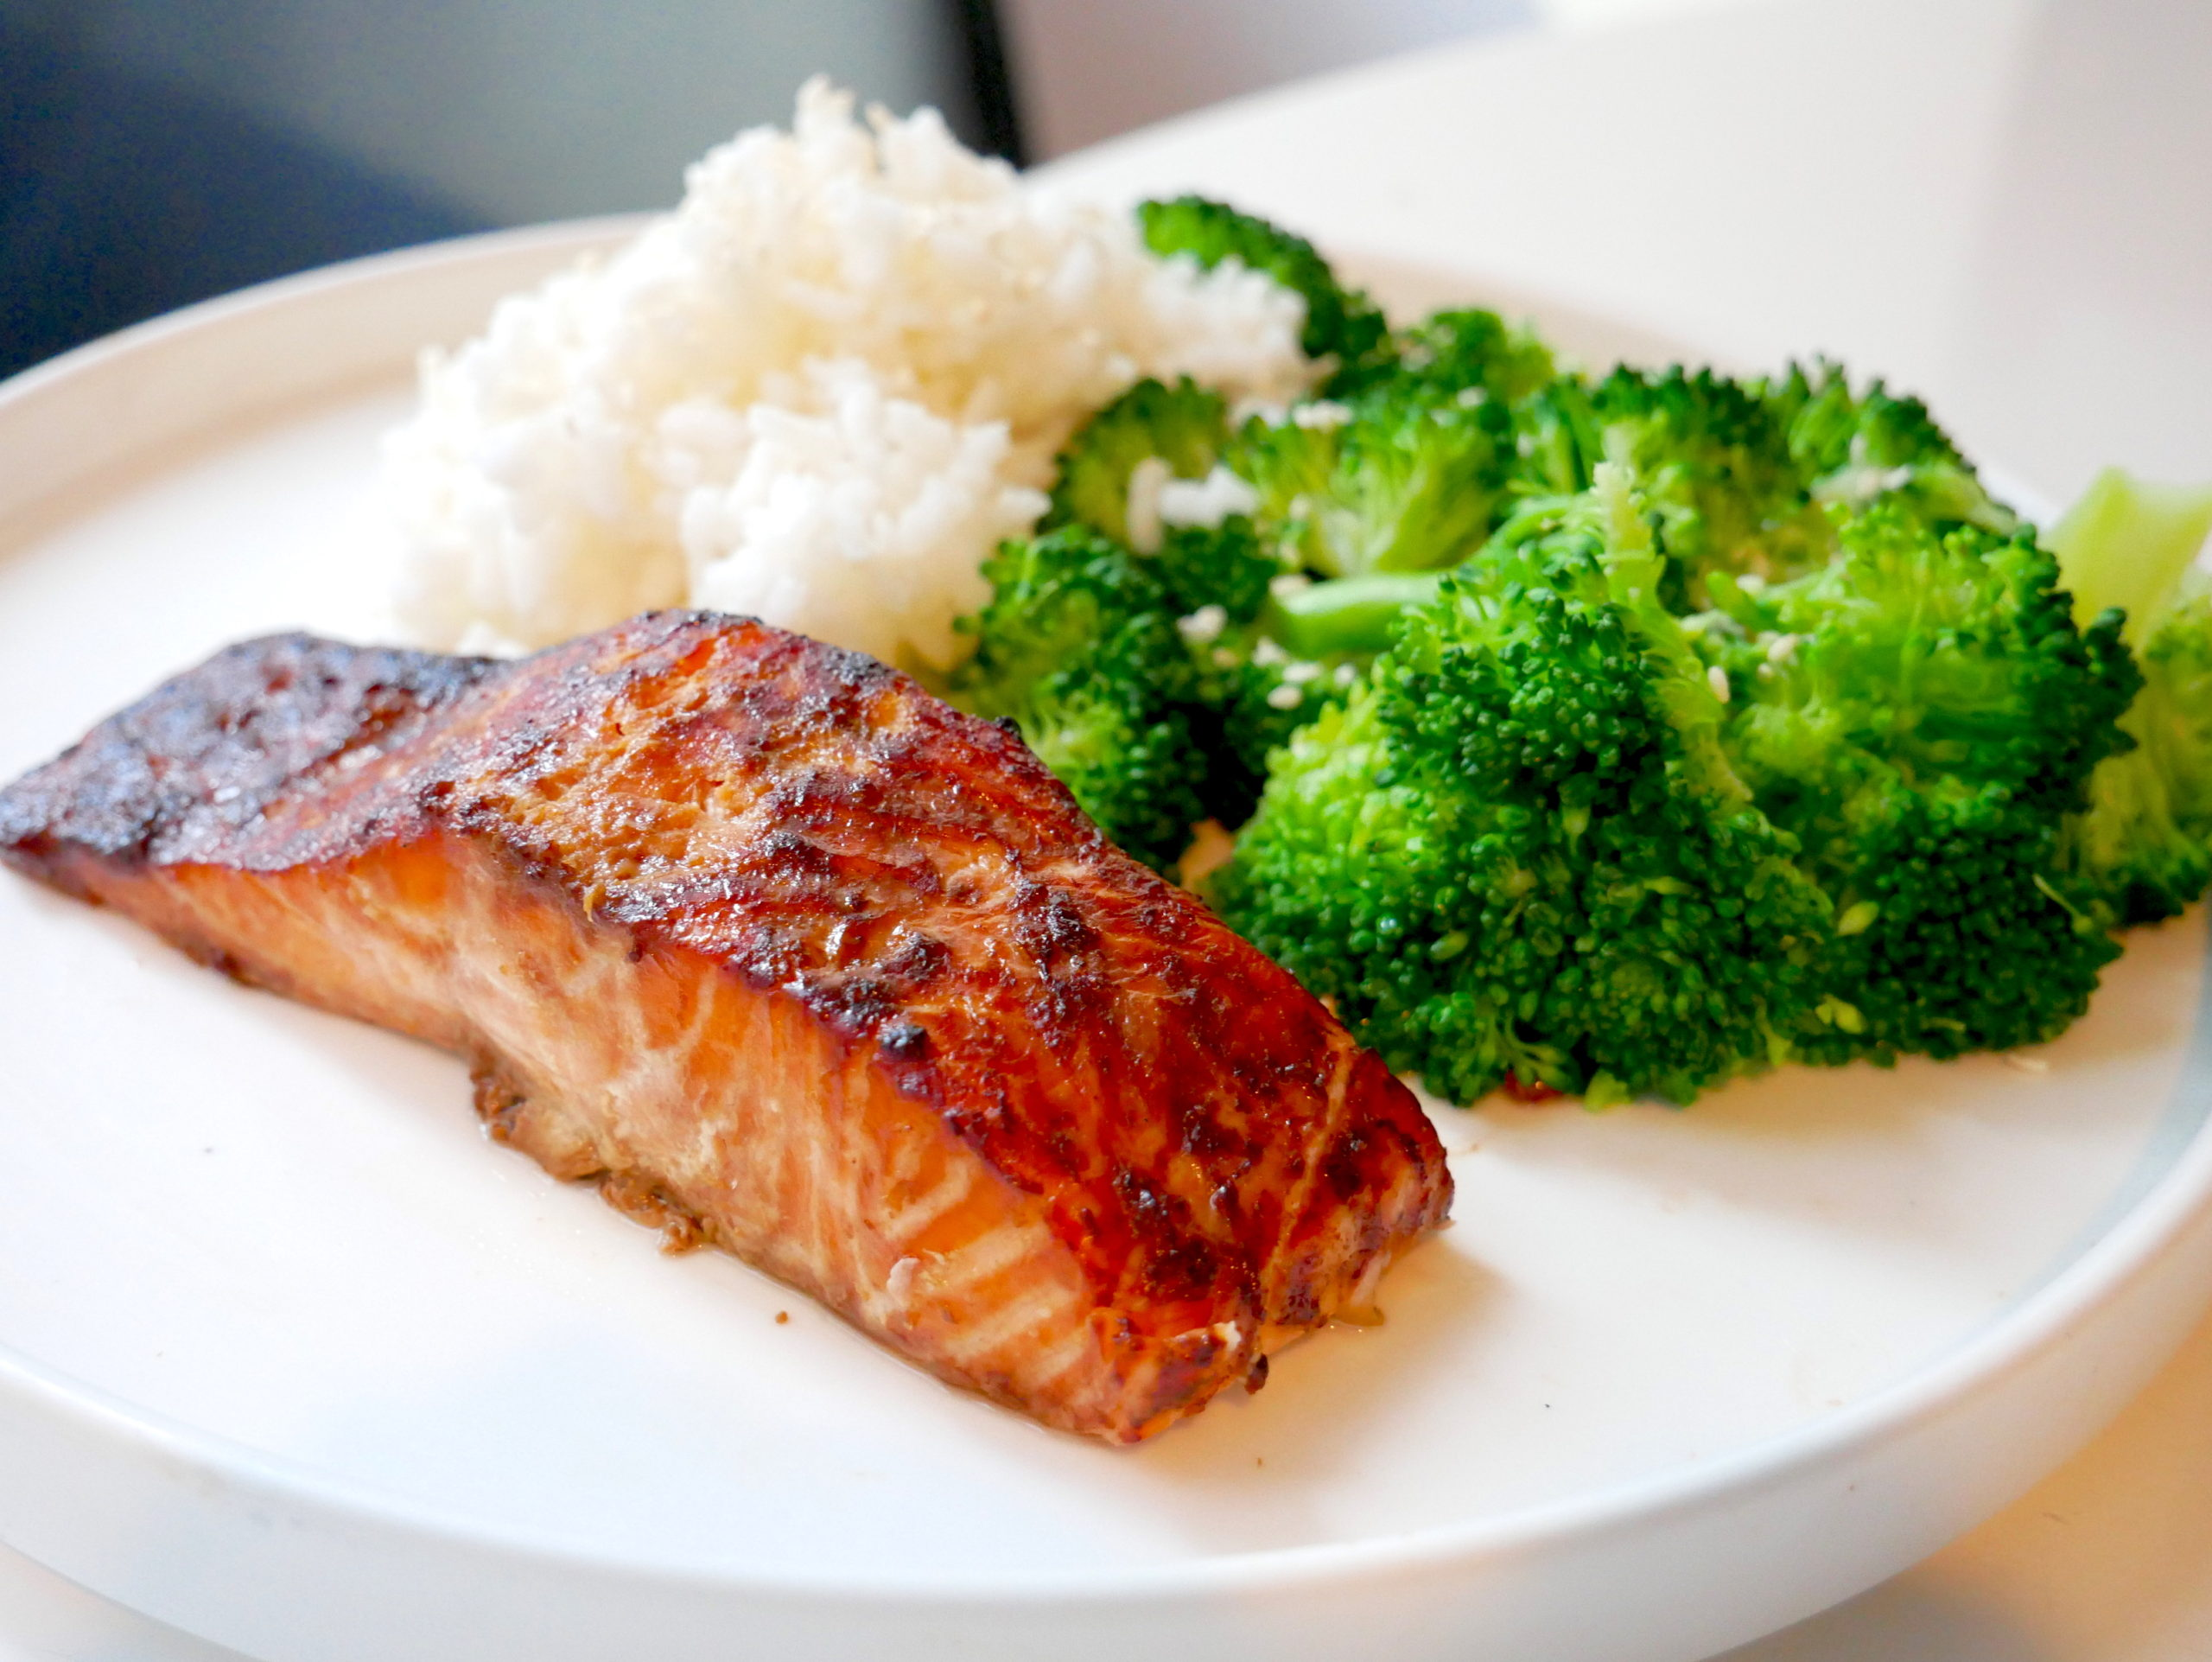 soy salmon recipe with rice and broccoli